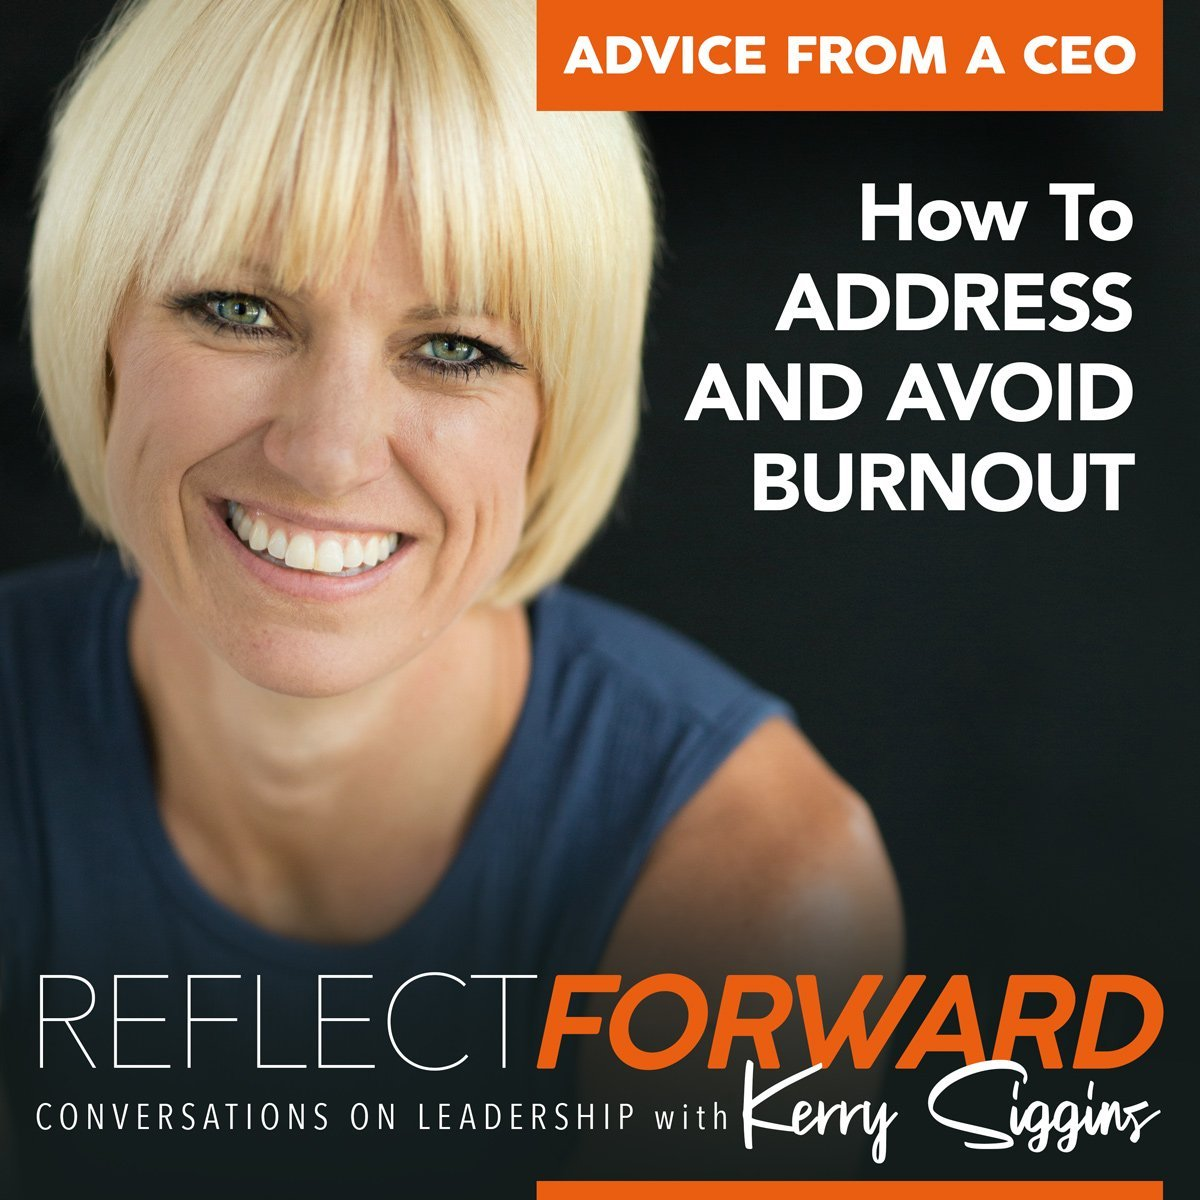 Photo Advice From a CEO Addressing Burnout